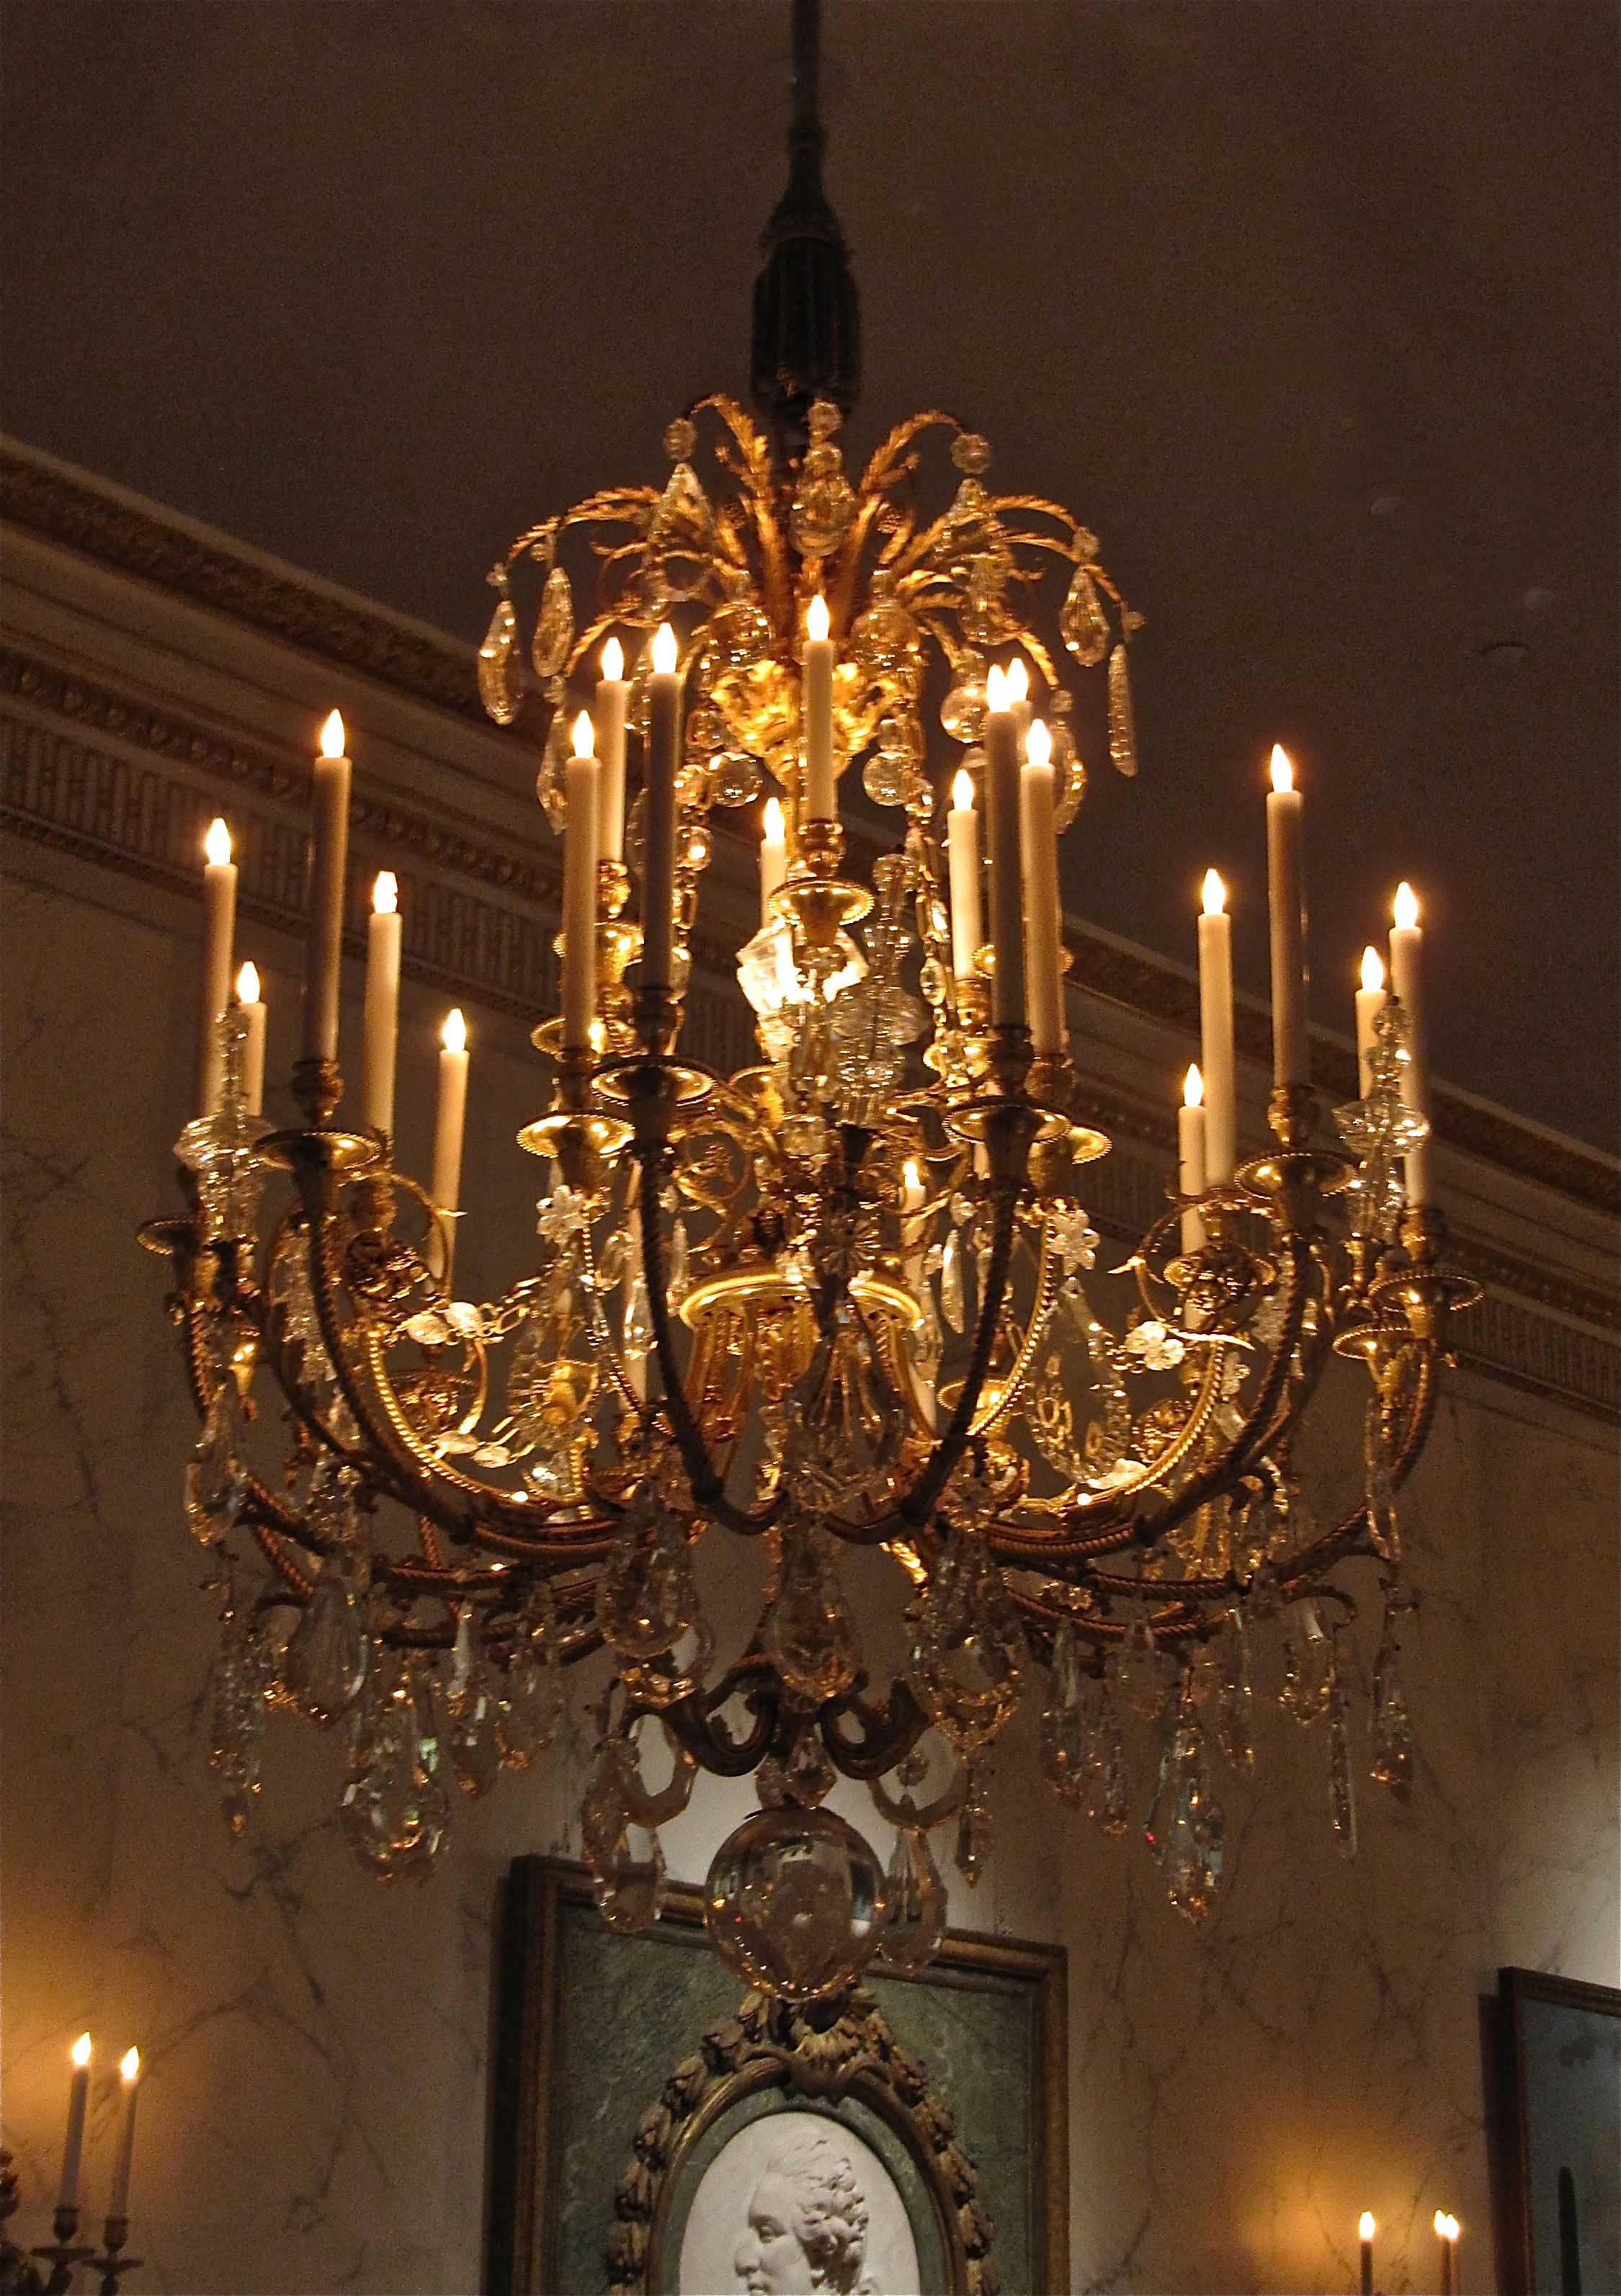 The french hall chandelier at the met museum nyc one of a pair the french hall chandelier at the met museum nyc one of a pair of huge about 5 tall 28 light ormolu chandeliers perfectly embossed and chased aloadofball Images